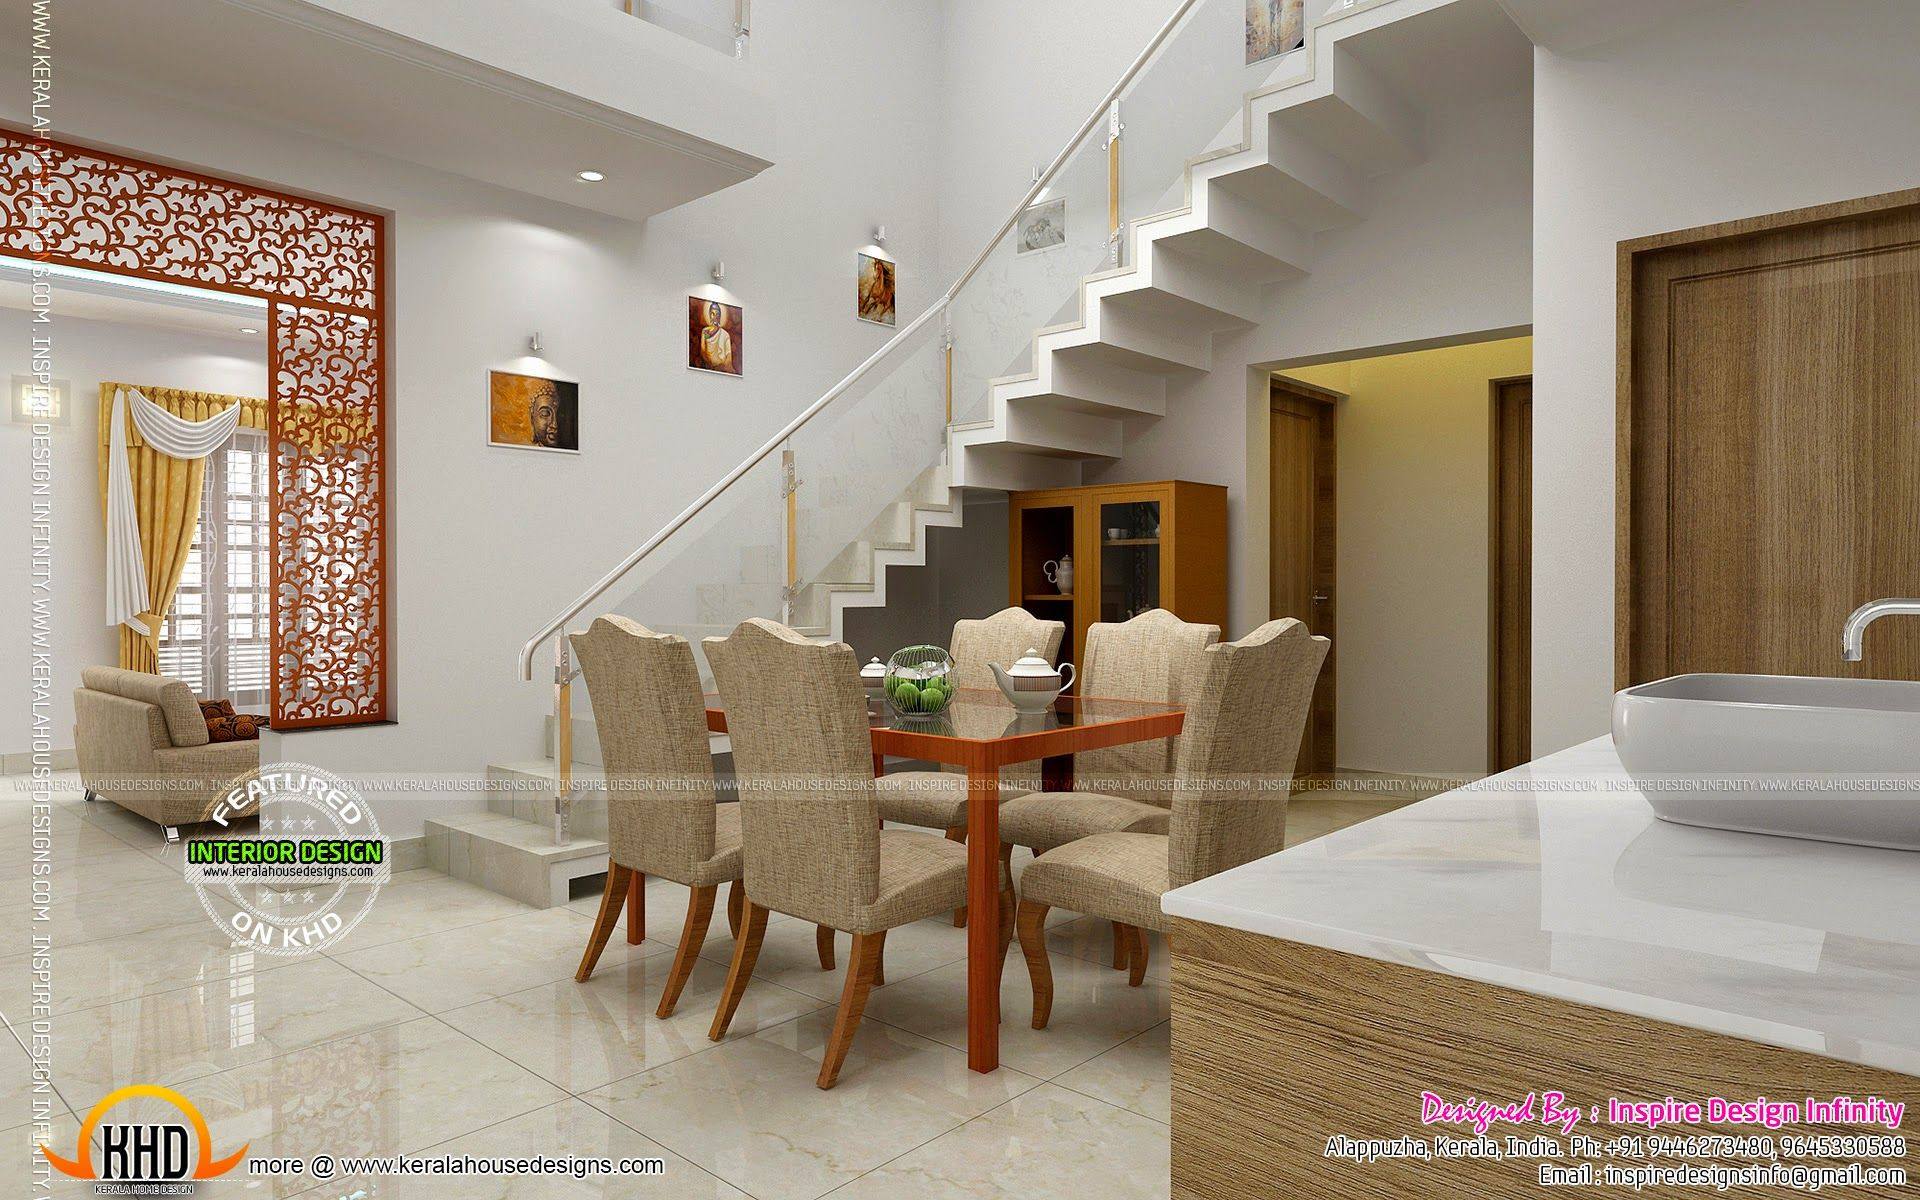 Kerala Home Design House Interior Photos Splendid Design: Kerala Home Design And Floor Plans